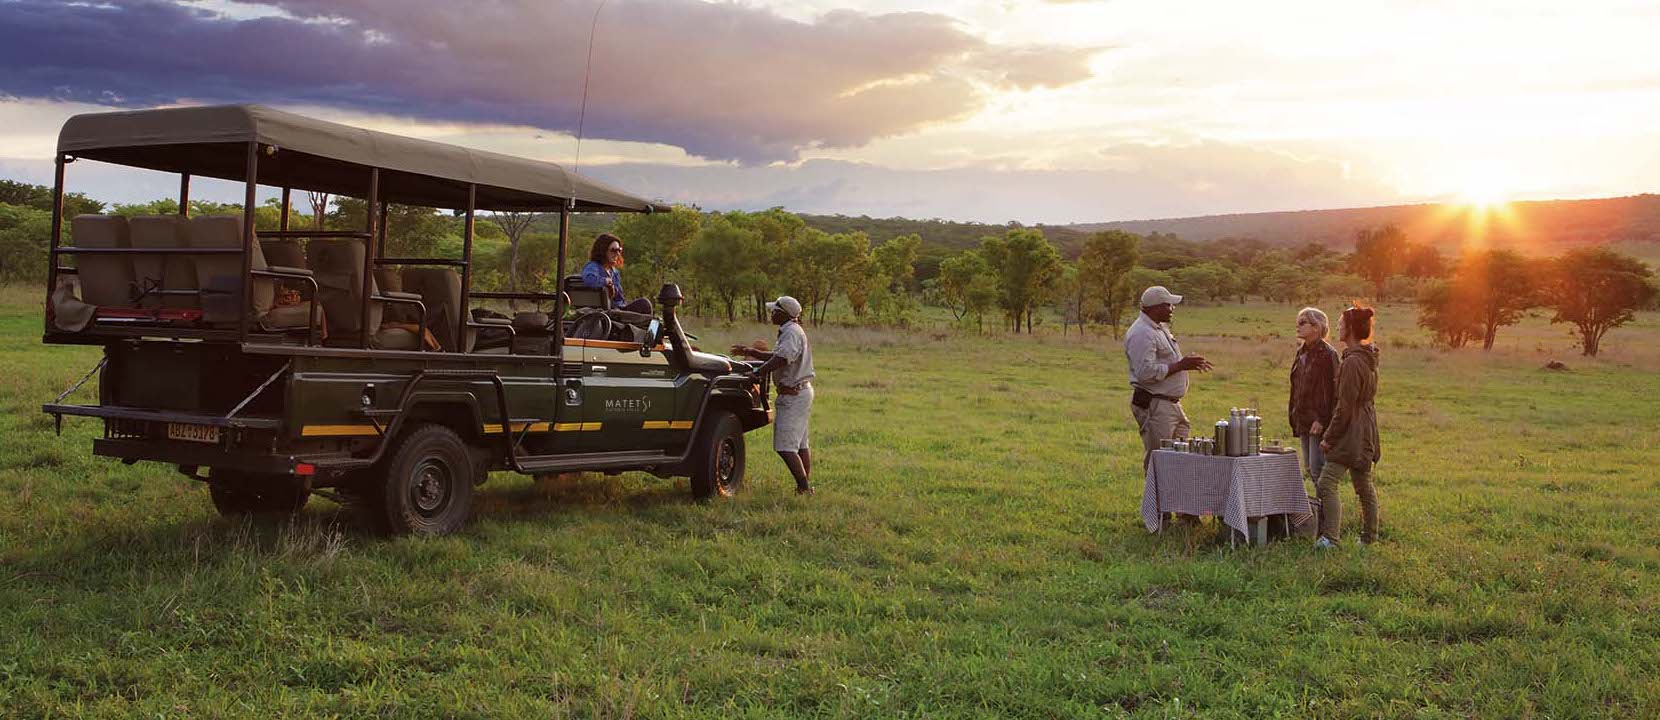 Matetsi River Lodge, Matetsi Private Game Reserve,  Victoria Falls / Zimbabwe